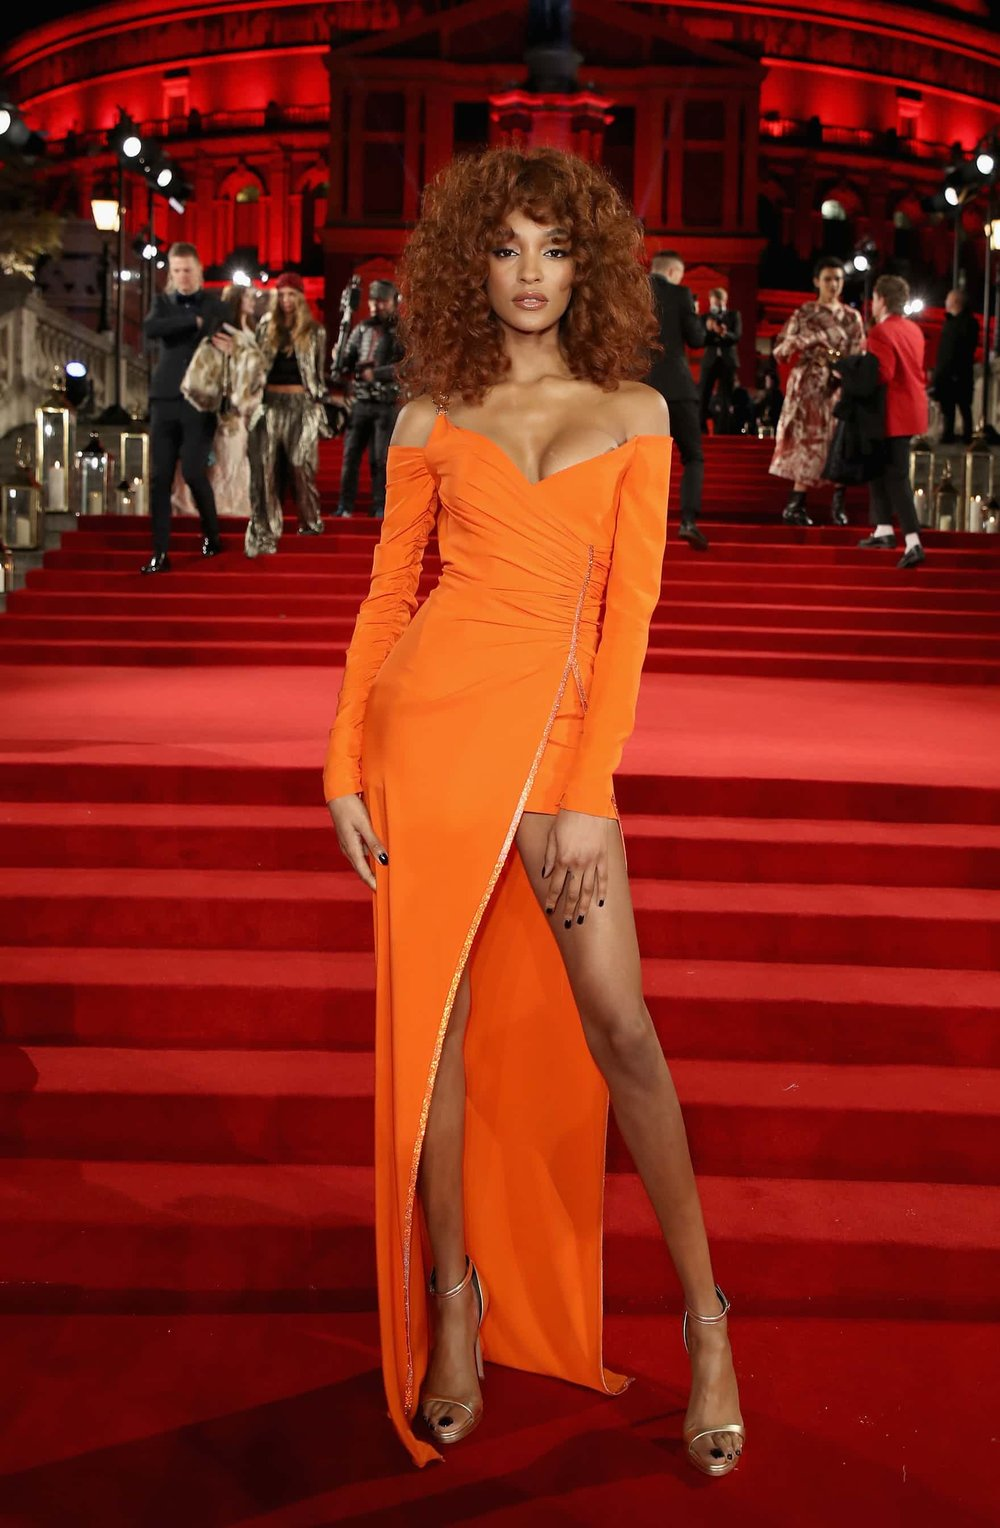 Jourdan in Orange - Dunn is looking amazing in this Versace dress, which is fitting since Donatella Versace won the fashion Icon award this year.